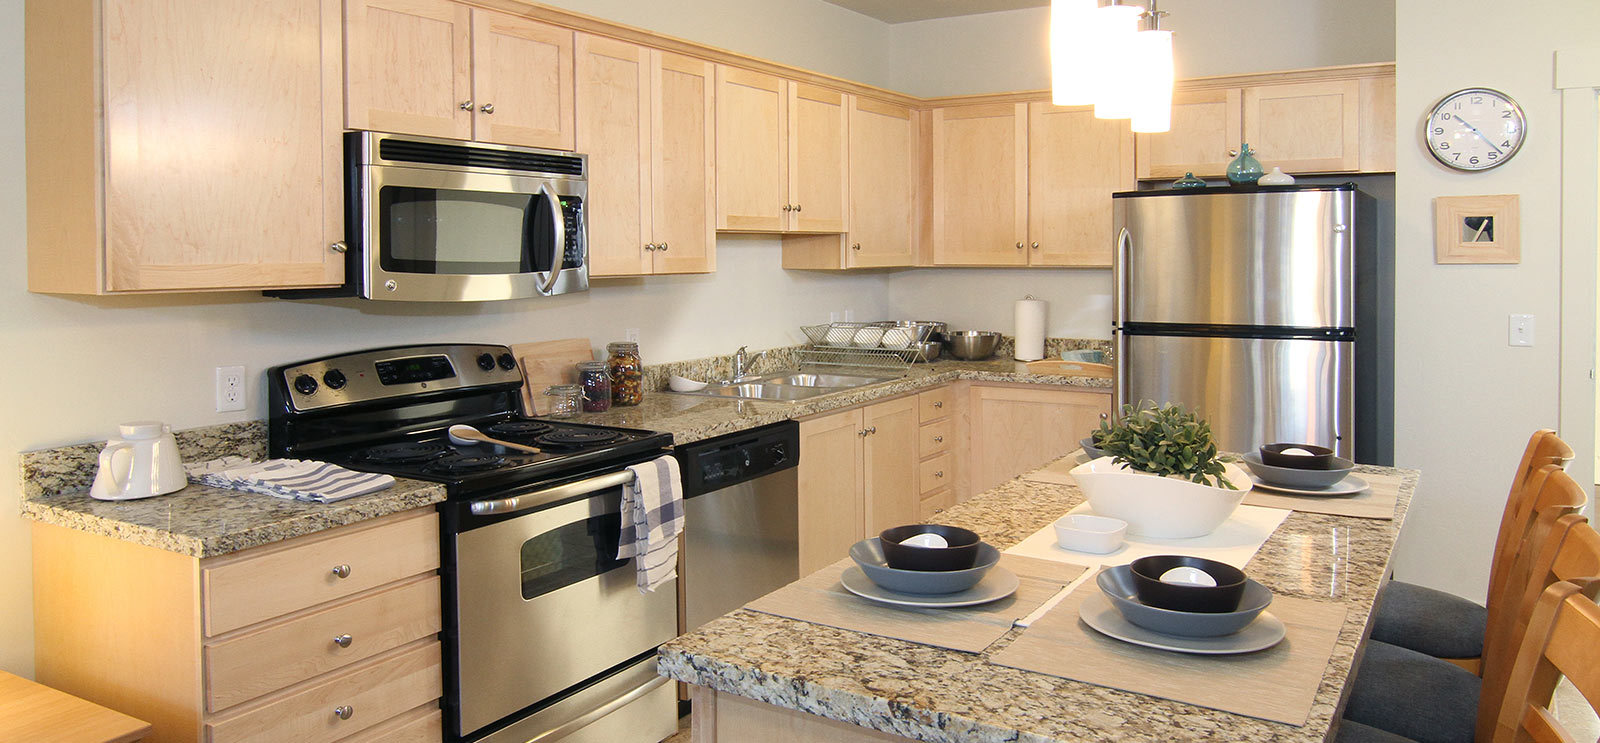 Student Apartments Near BYU In Provo, UT, 84606